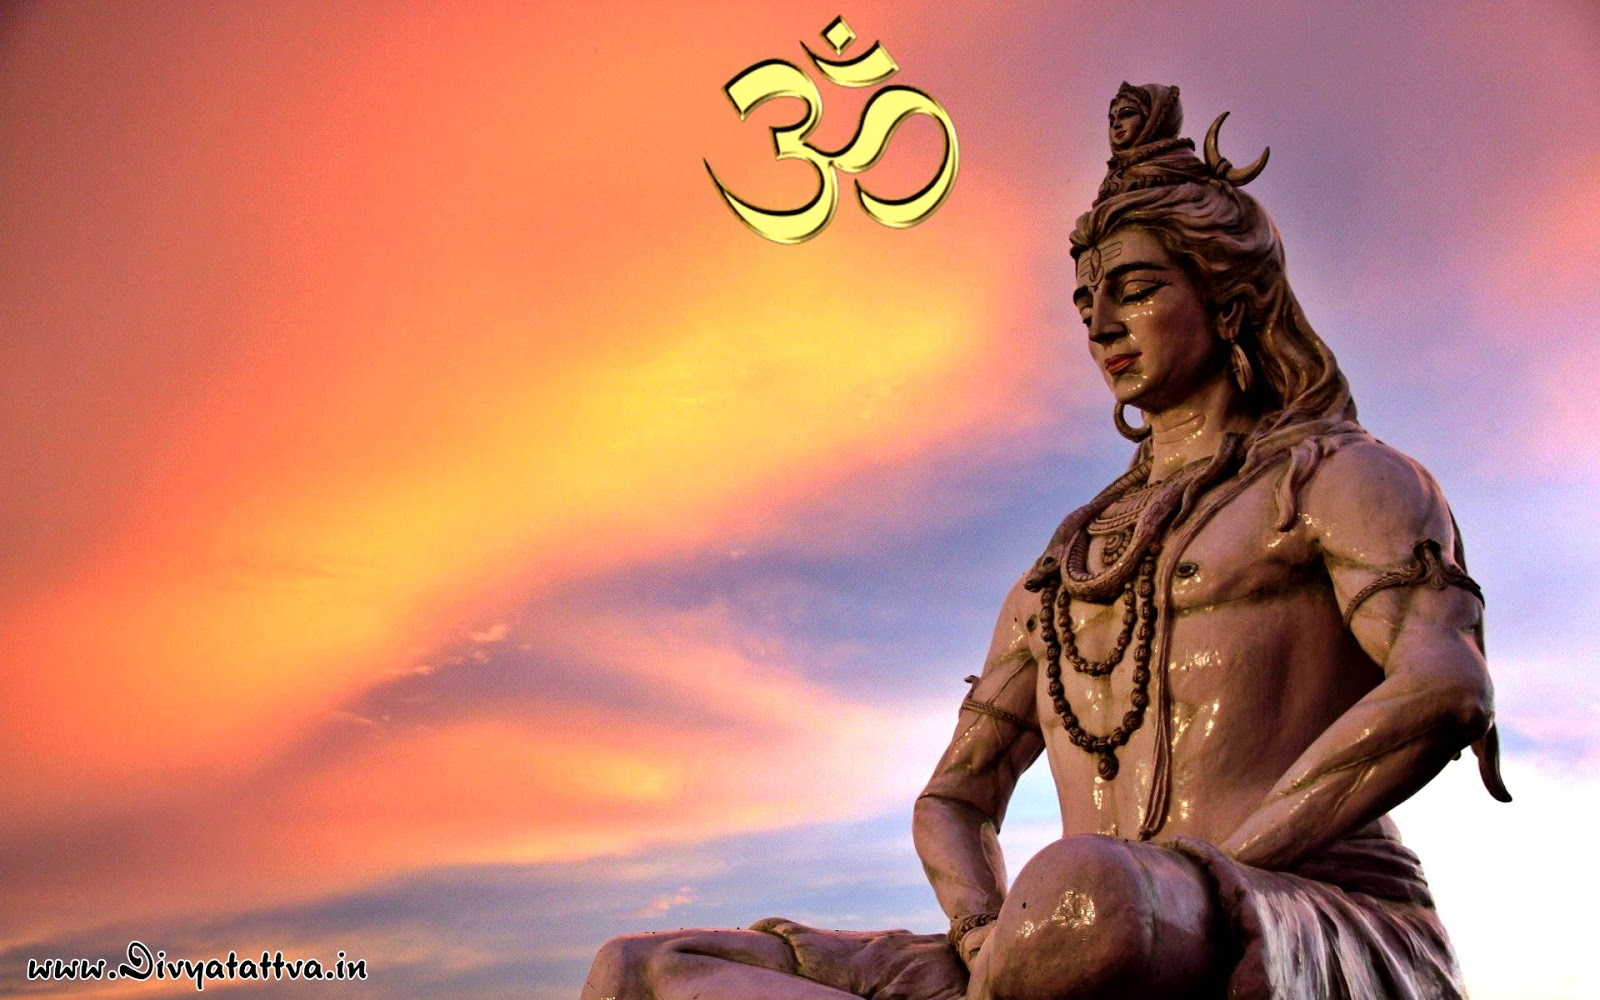 Simple Wallpaper Lord Nataraja - Lord-Shiva-HD-Wallpaper-hindu-gods-backgrounds-www  Snapshot_571110.jpg